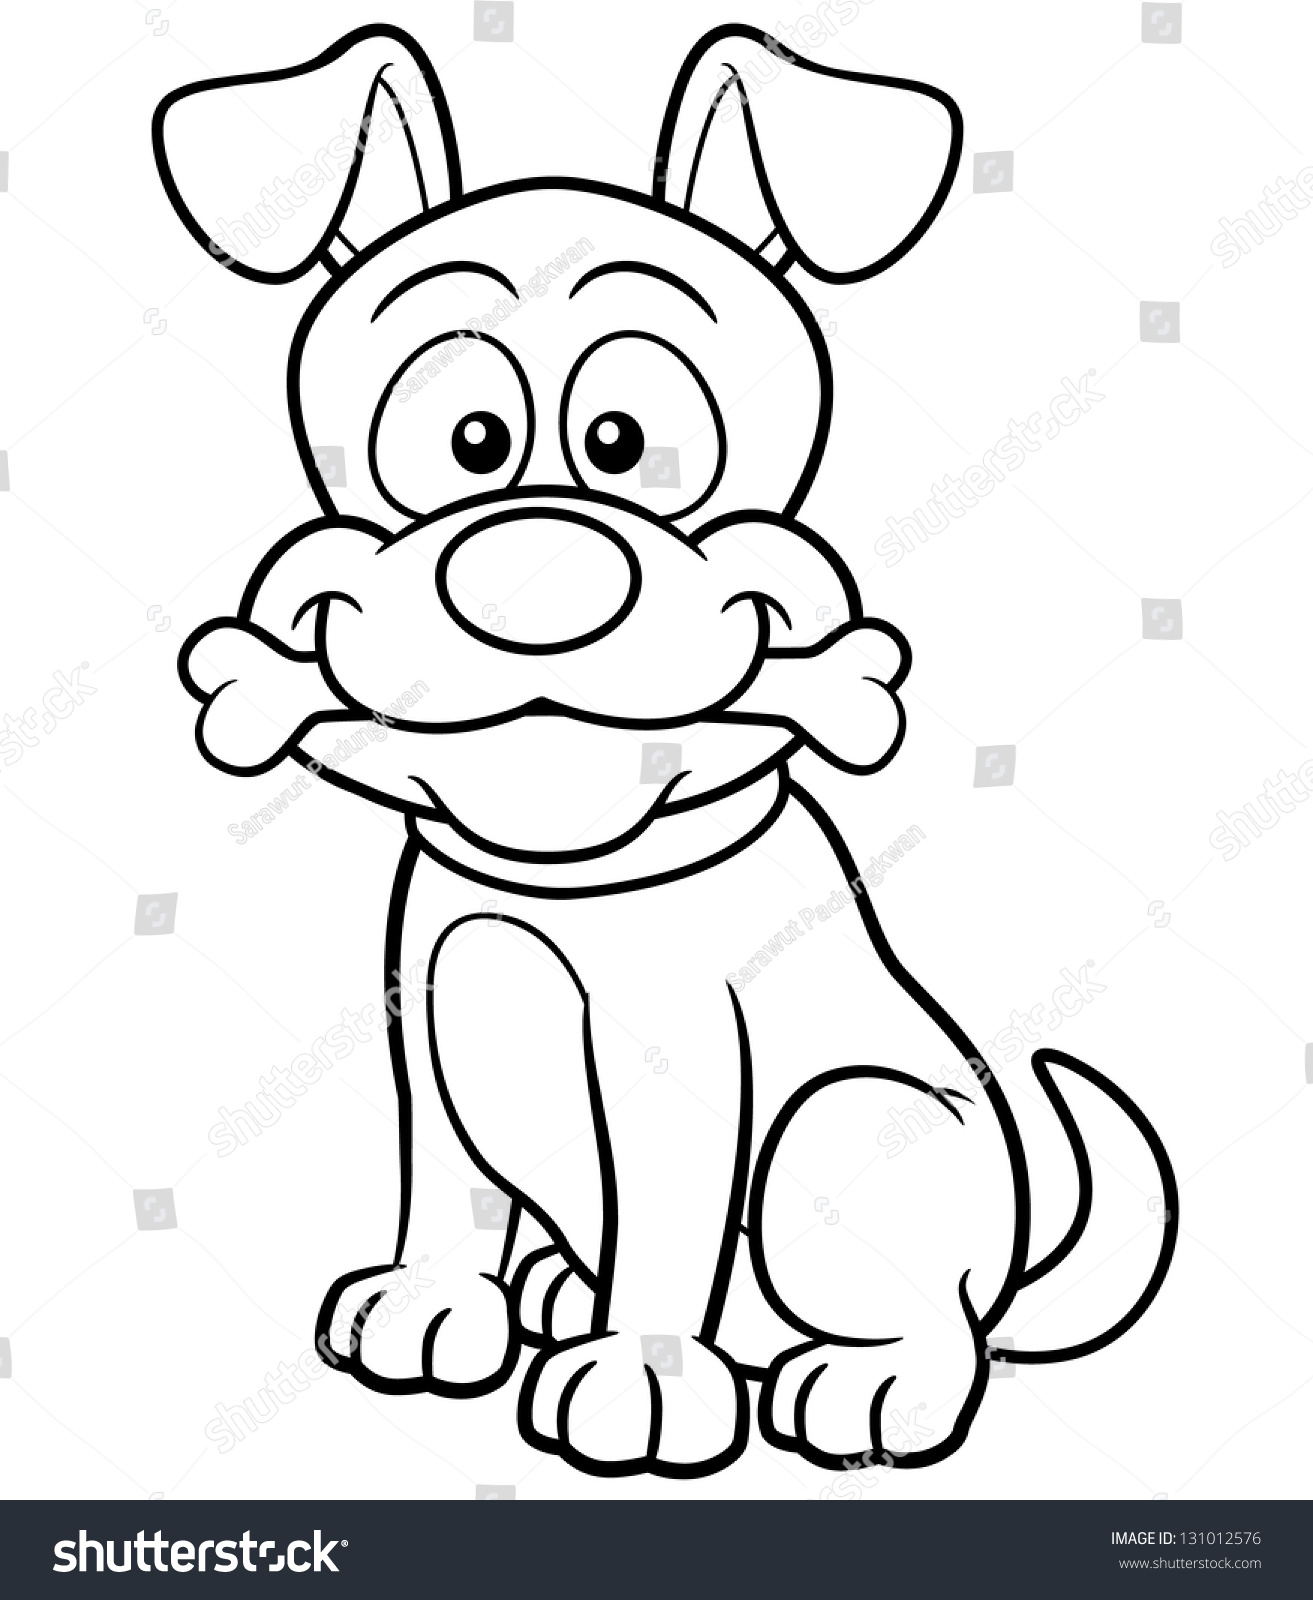 cartoon dog coloring pages - photo#35